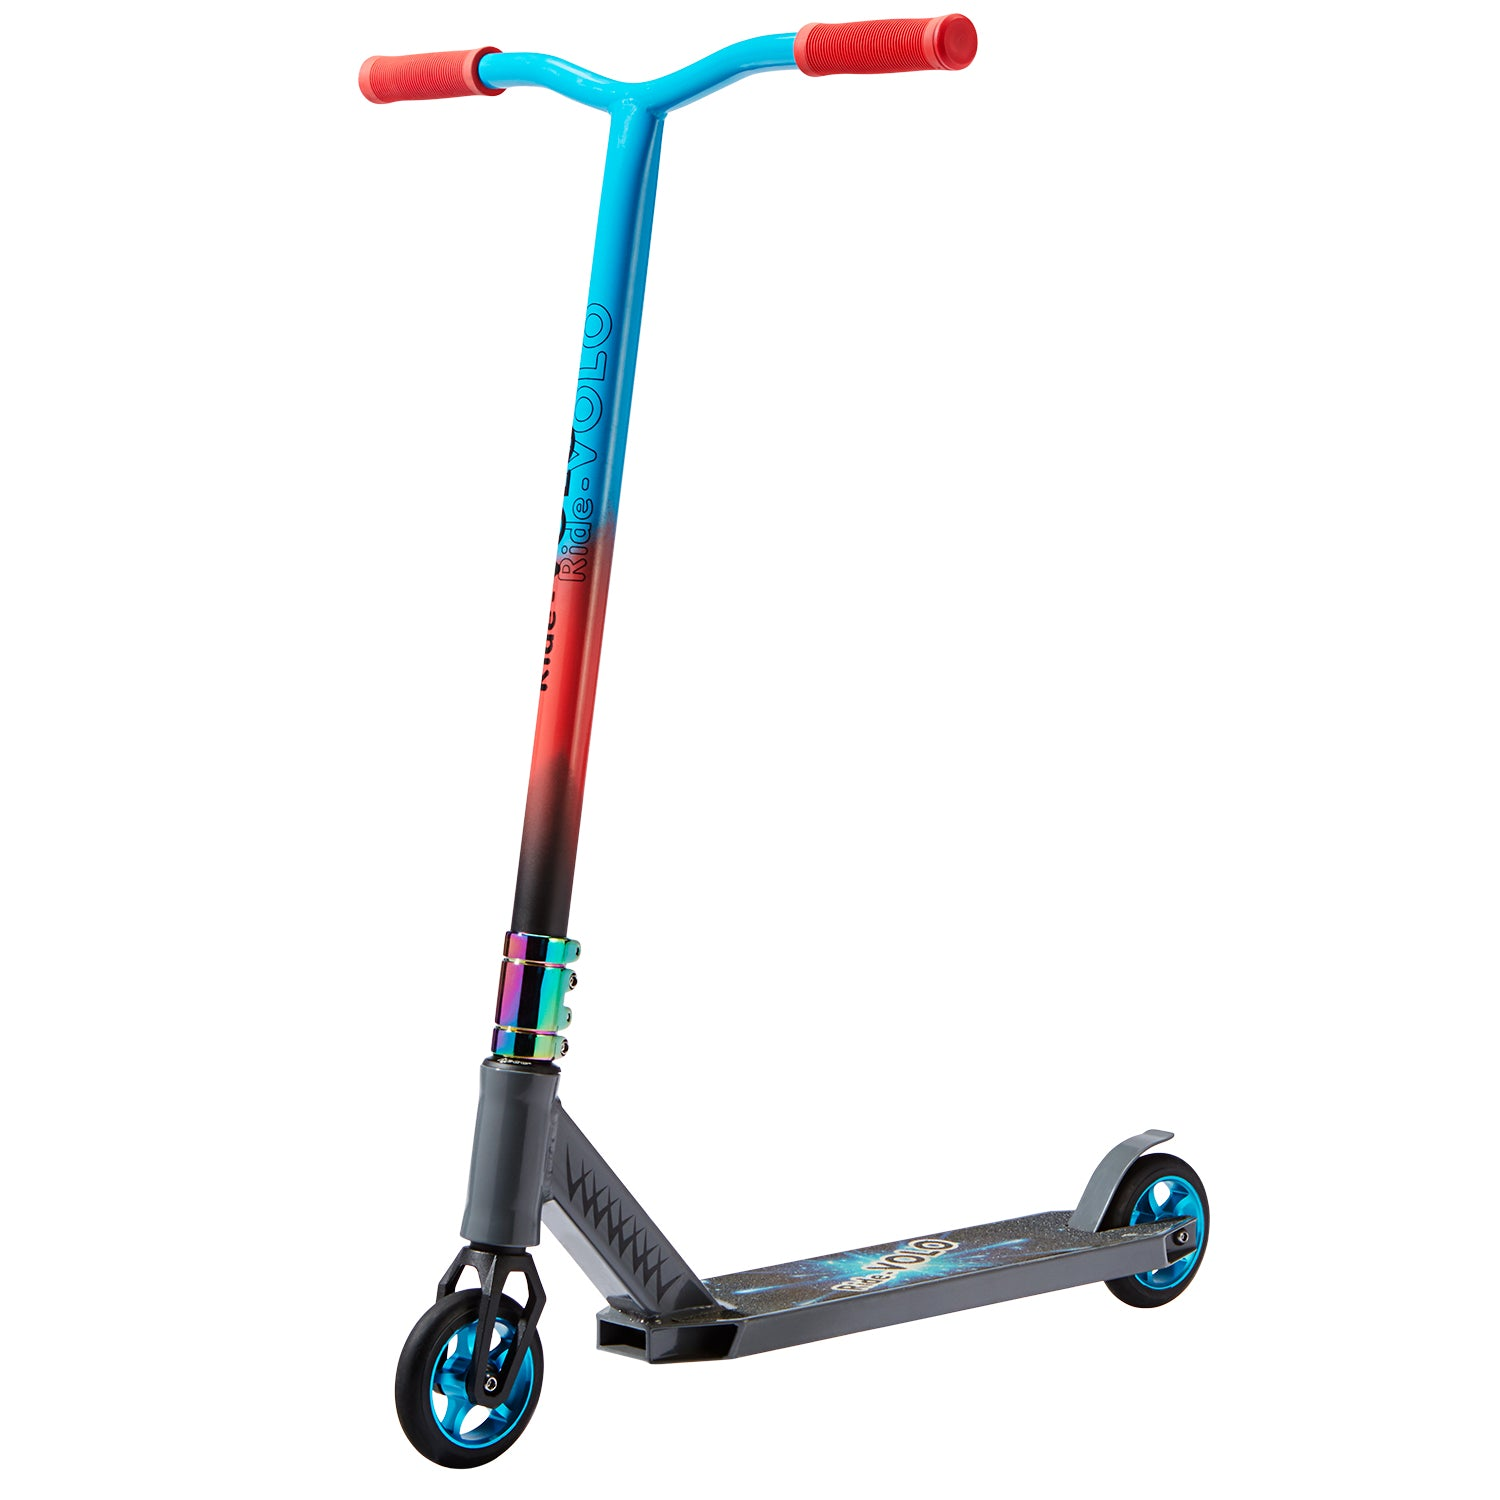 T02 stunt scooter main image